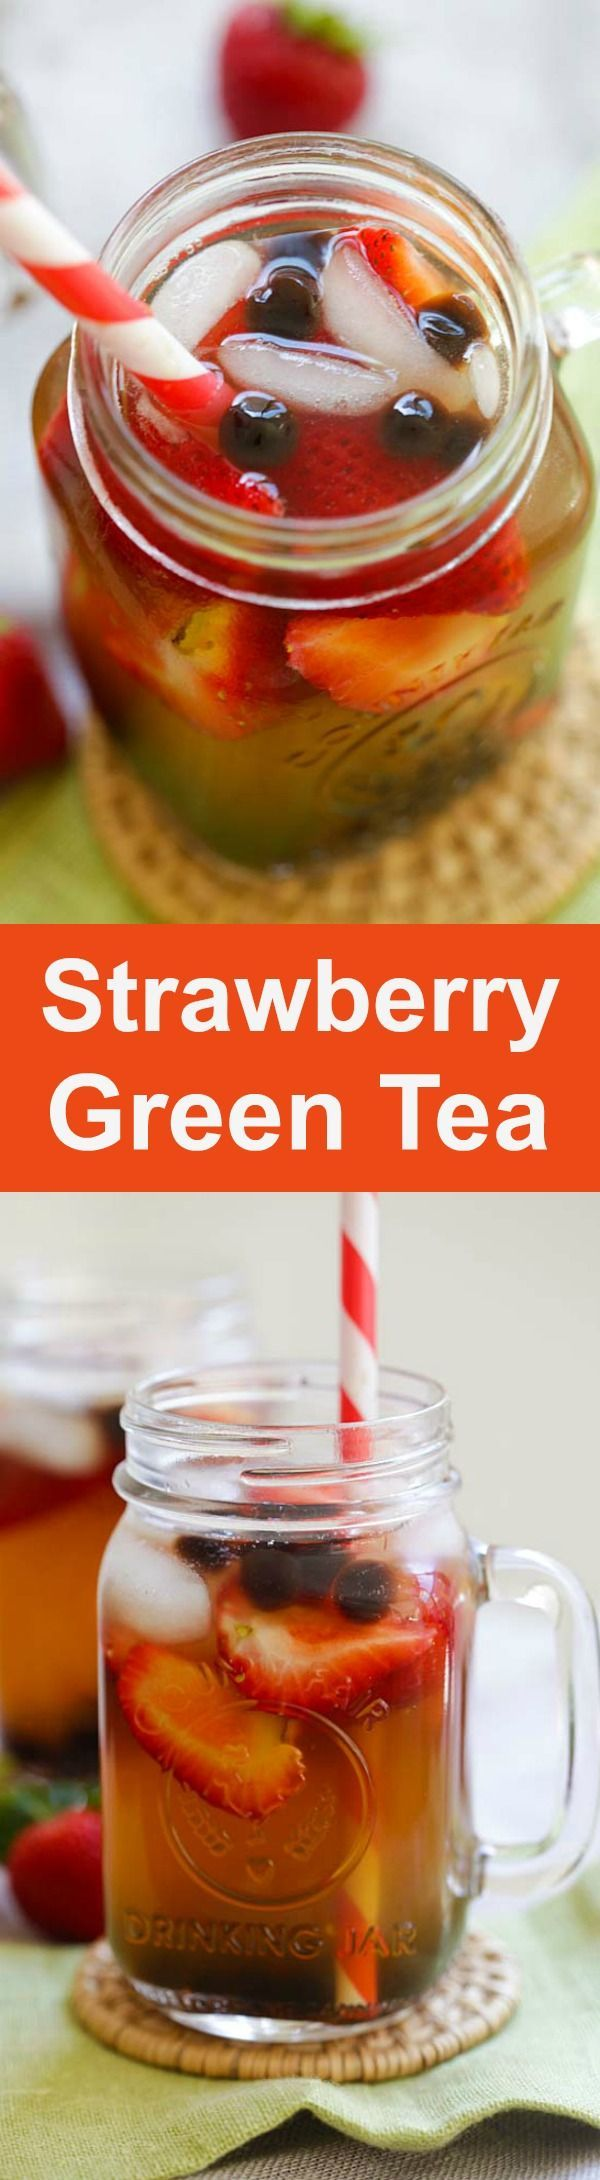 Strawberry Green Tea - healthy and refreshing green tea with strawberry and tapioca pearl boba. Perfect for summer | http://rasamalaysia.com